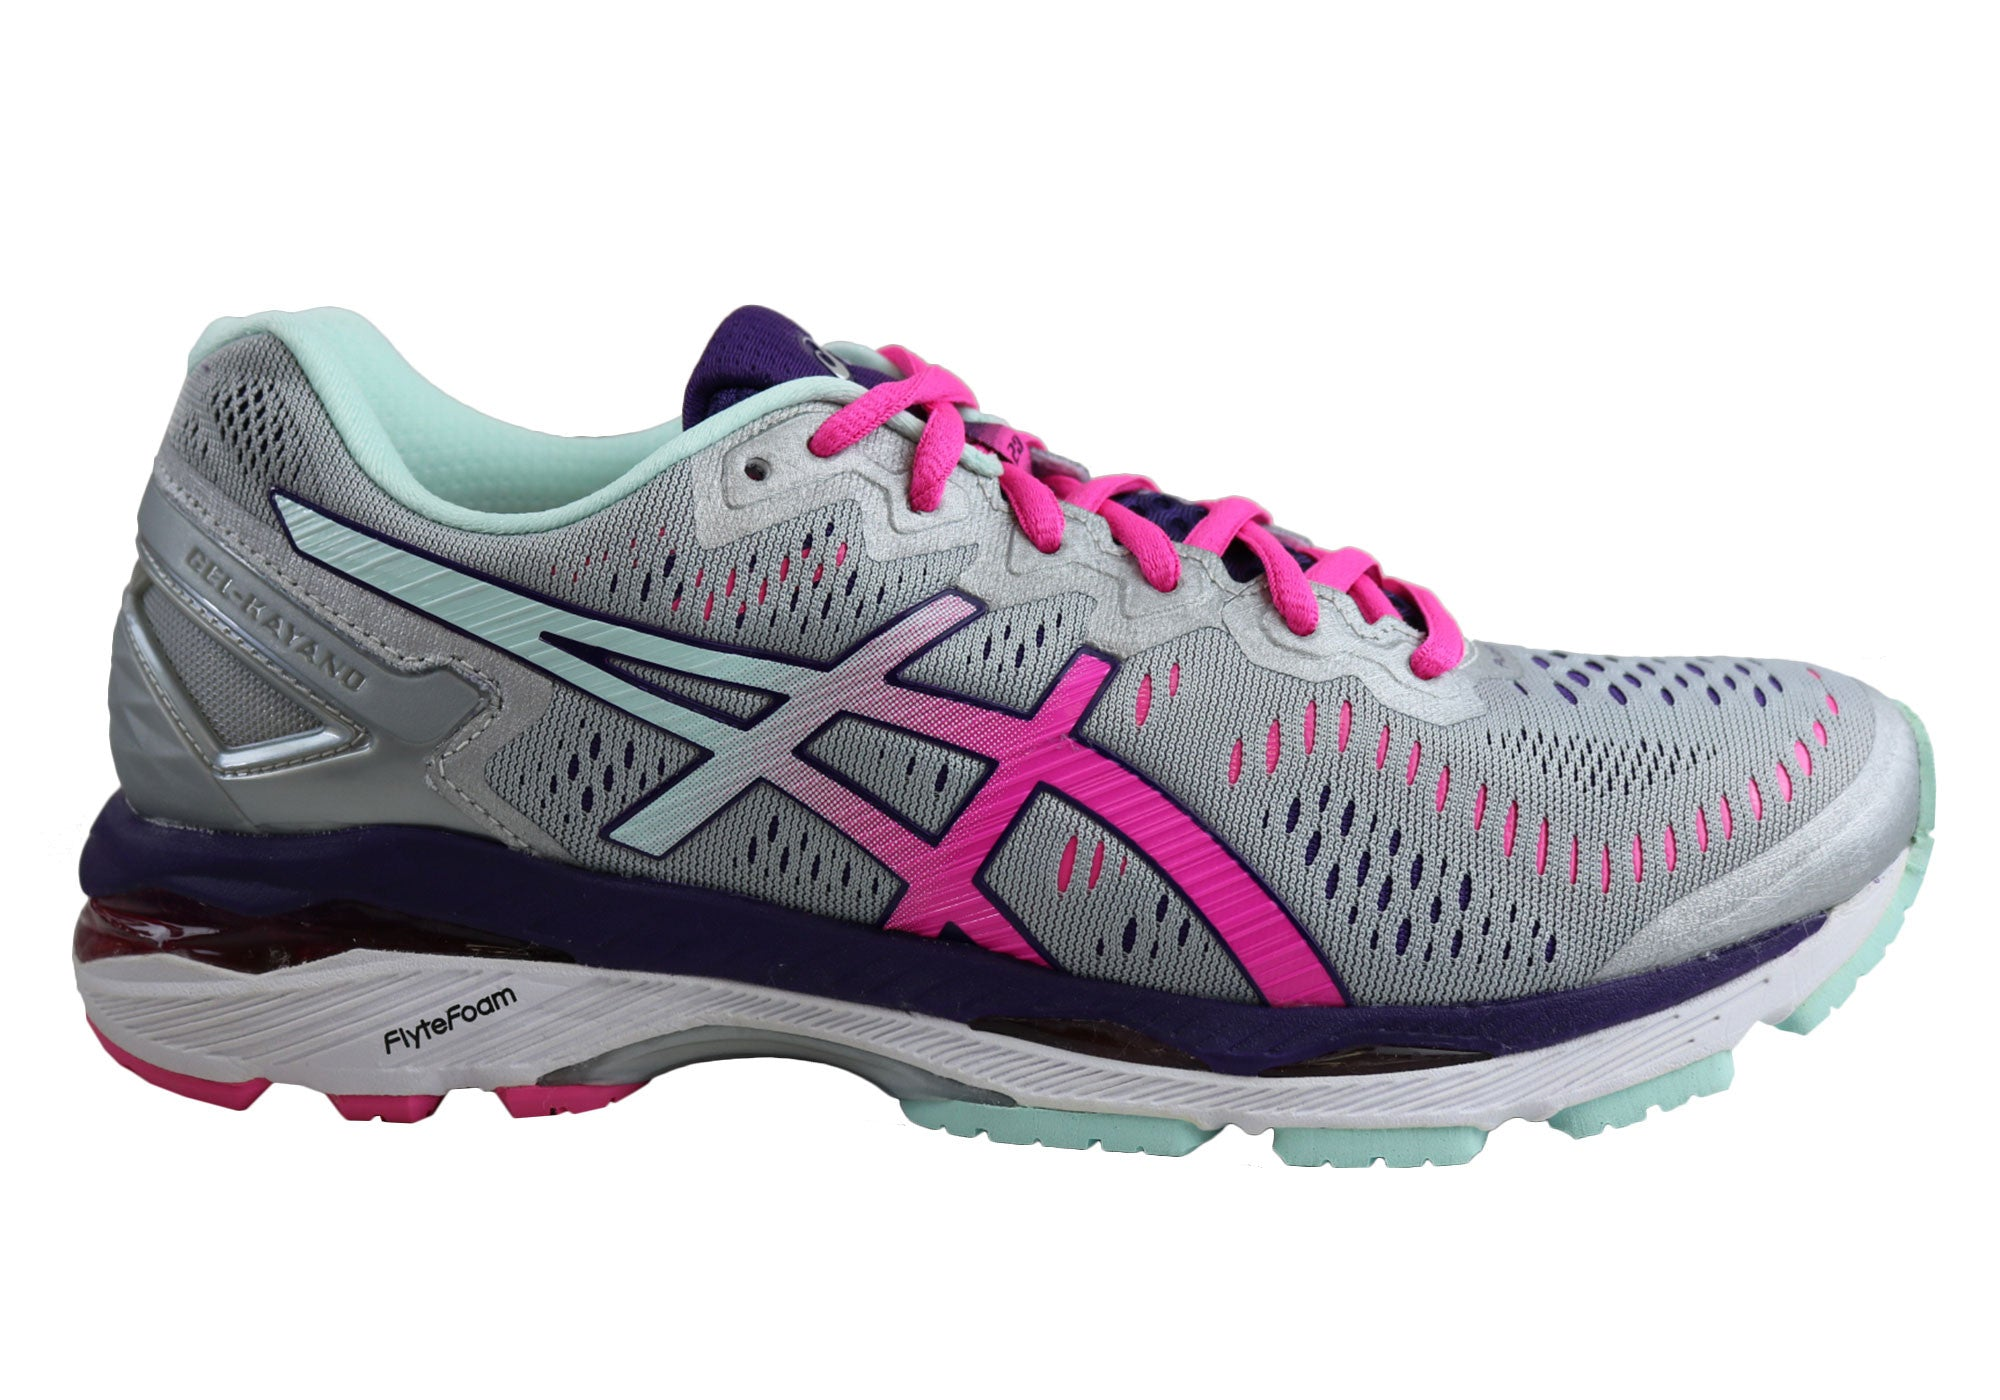 Asics Gel Kayano 23 Womens Premium Cushioned Running Sport